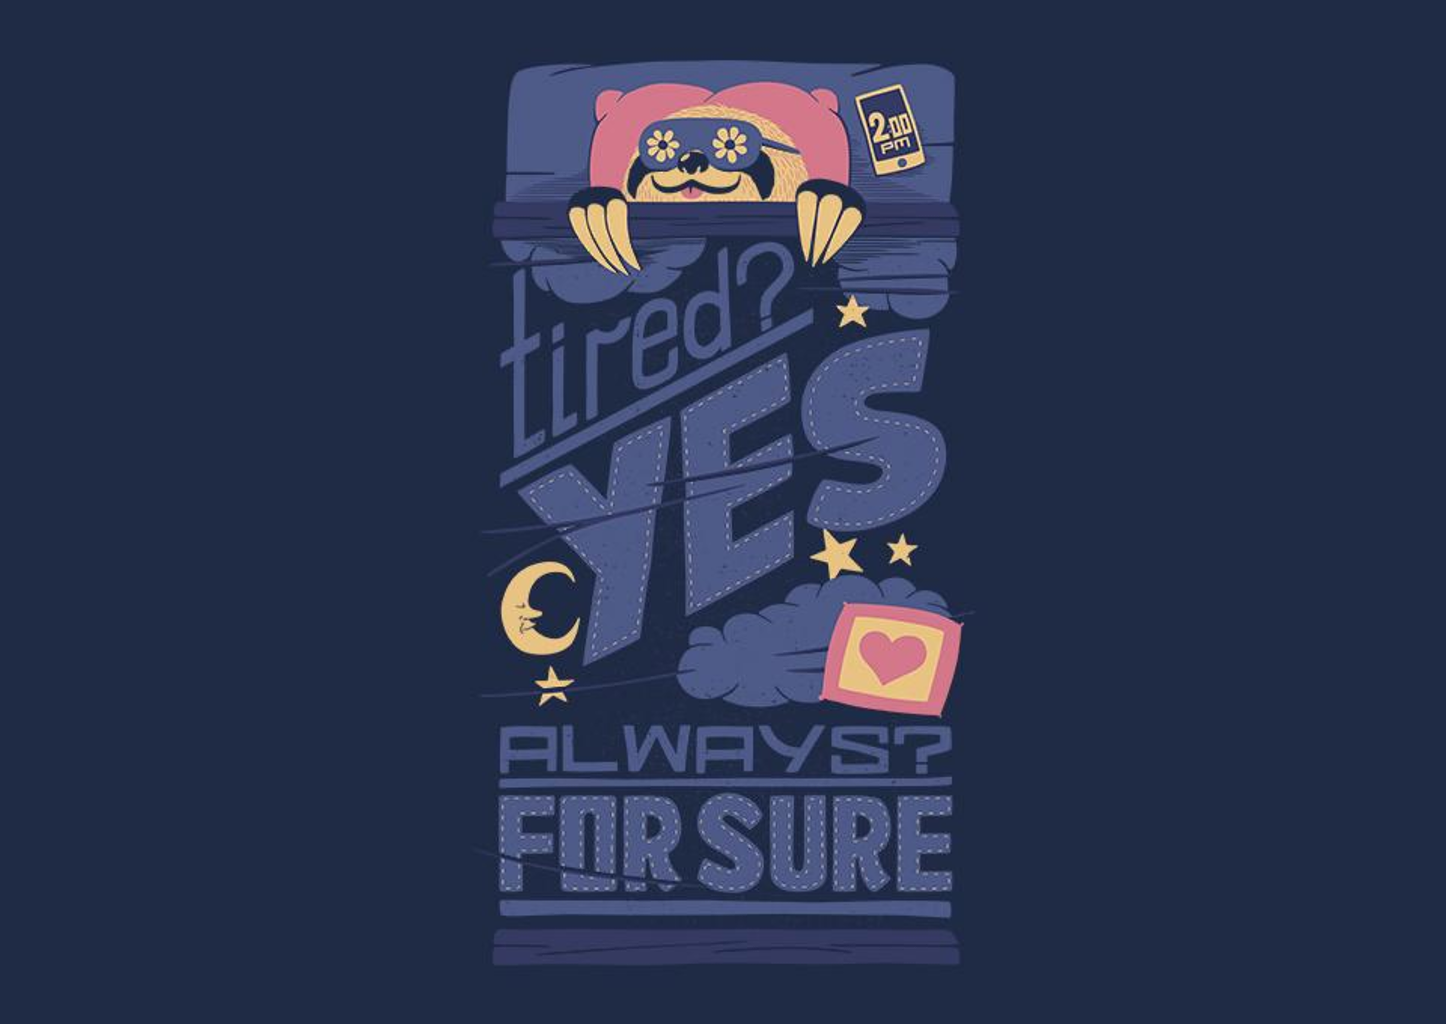 TeeFury: Tired? Yes. Always? For Sure.